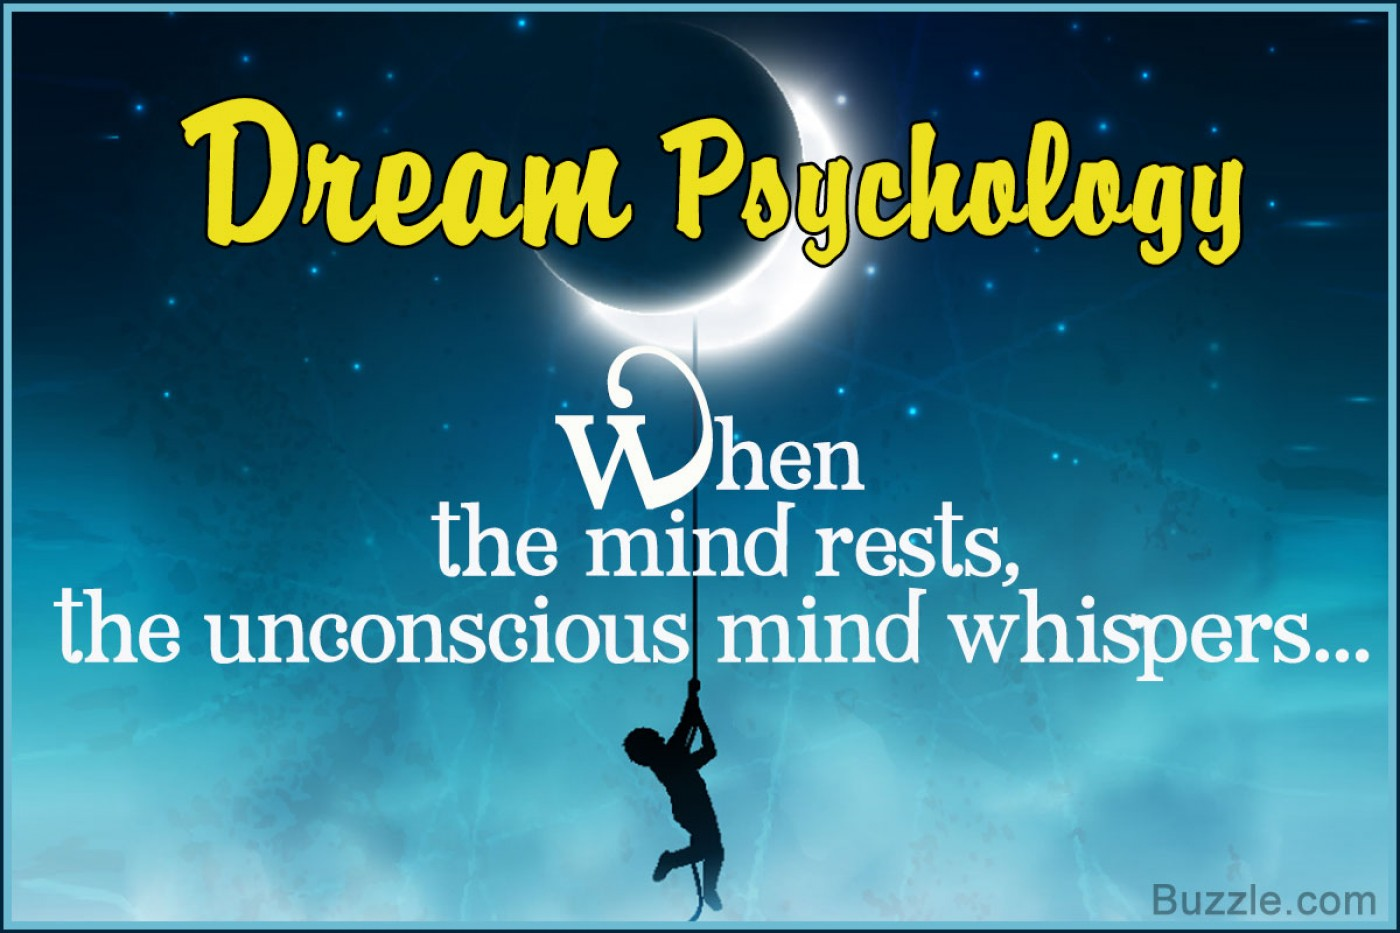 011 Psychology Of Dreams Research Paper Singular On News Articles 1400